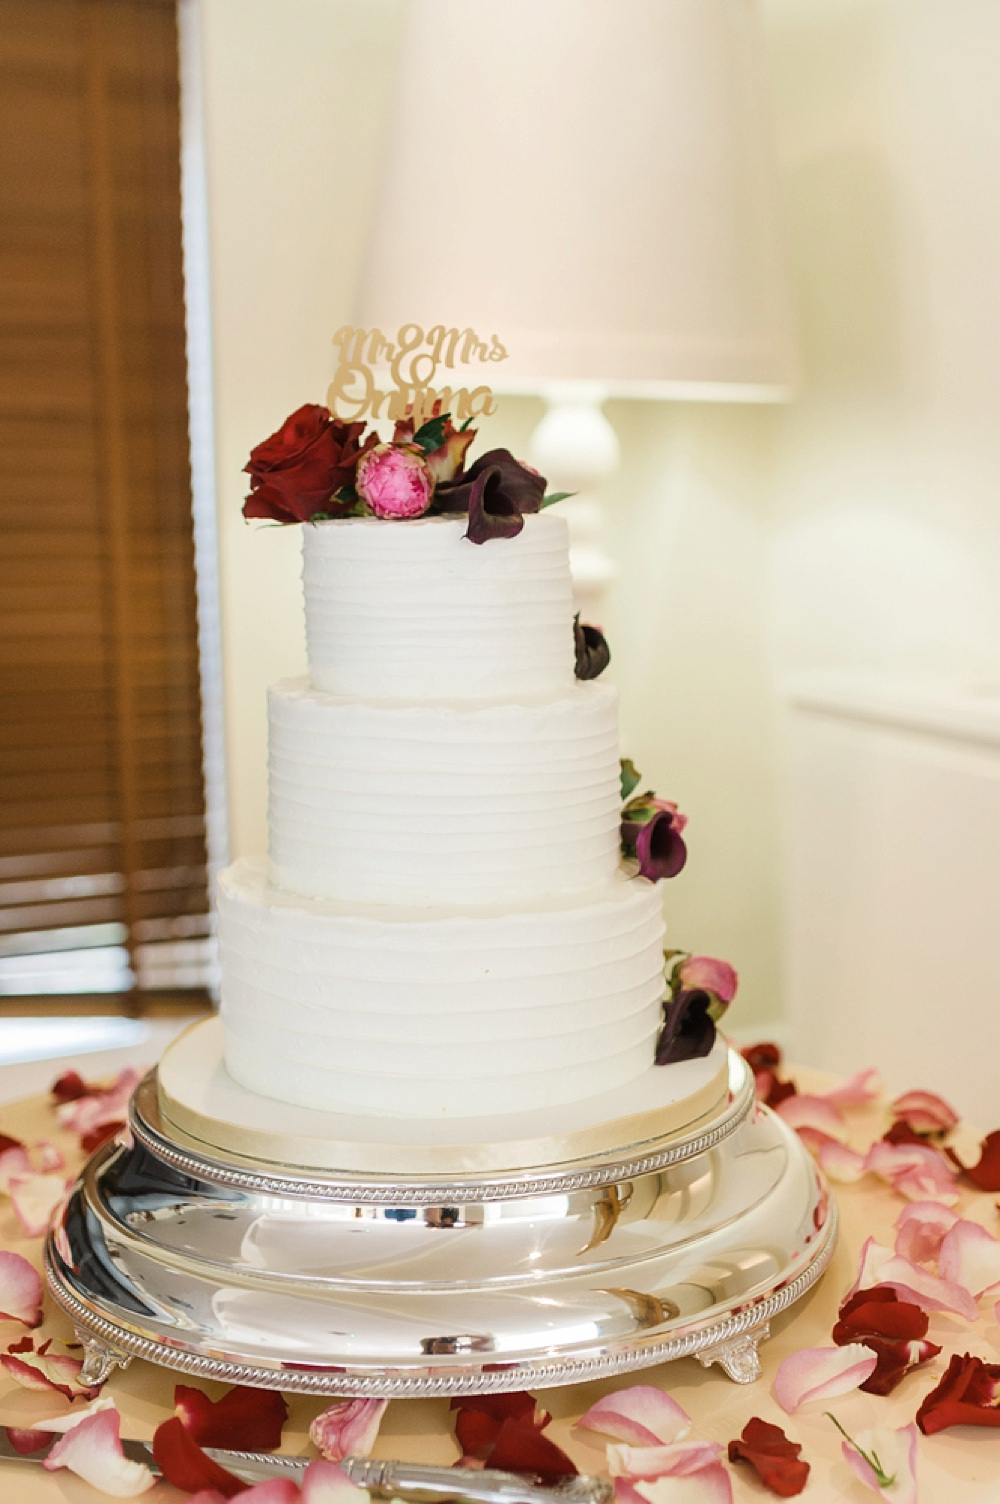 Cake Buttercream Flowers Floral Pink Red Mr & Mrs Cake Topper Stoke Place Wedding Hannah McClune Photography